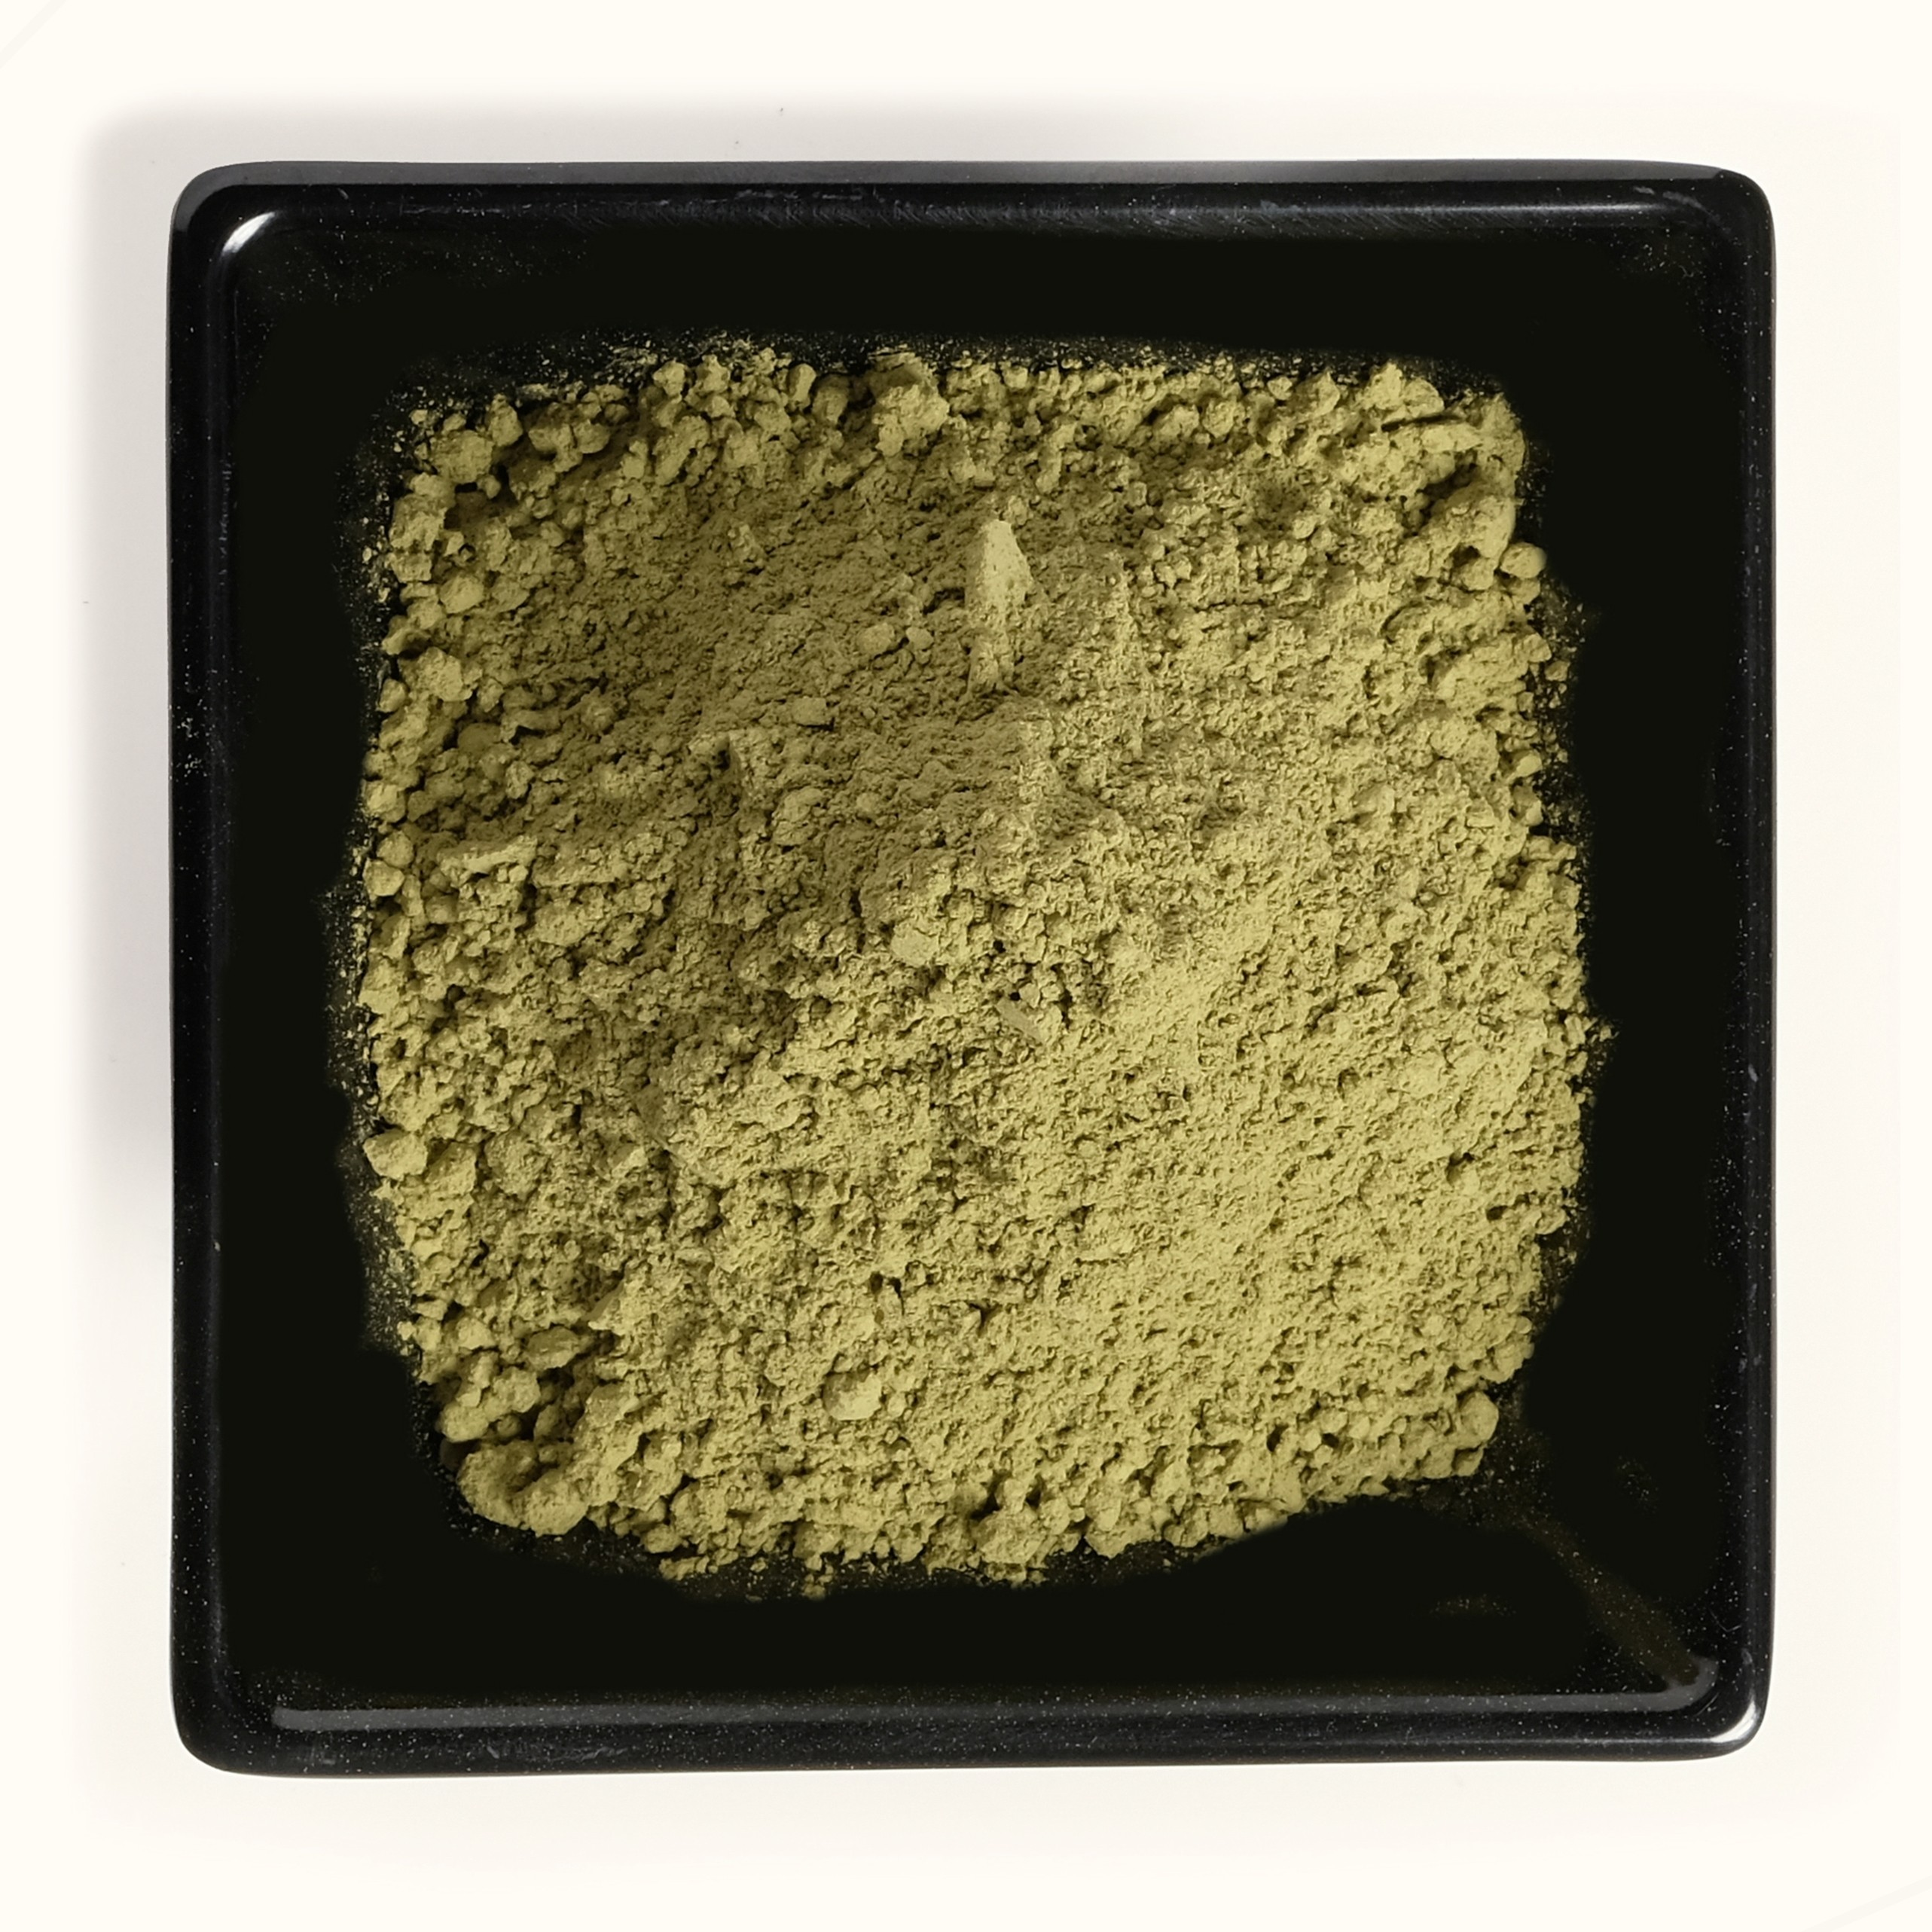 Thai Kratom Powder (Green Vein)